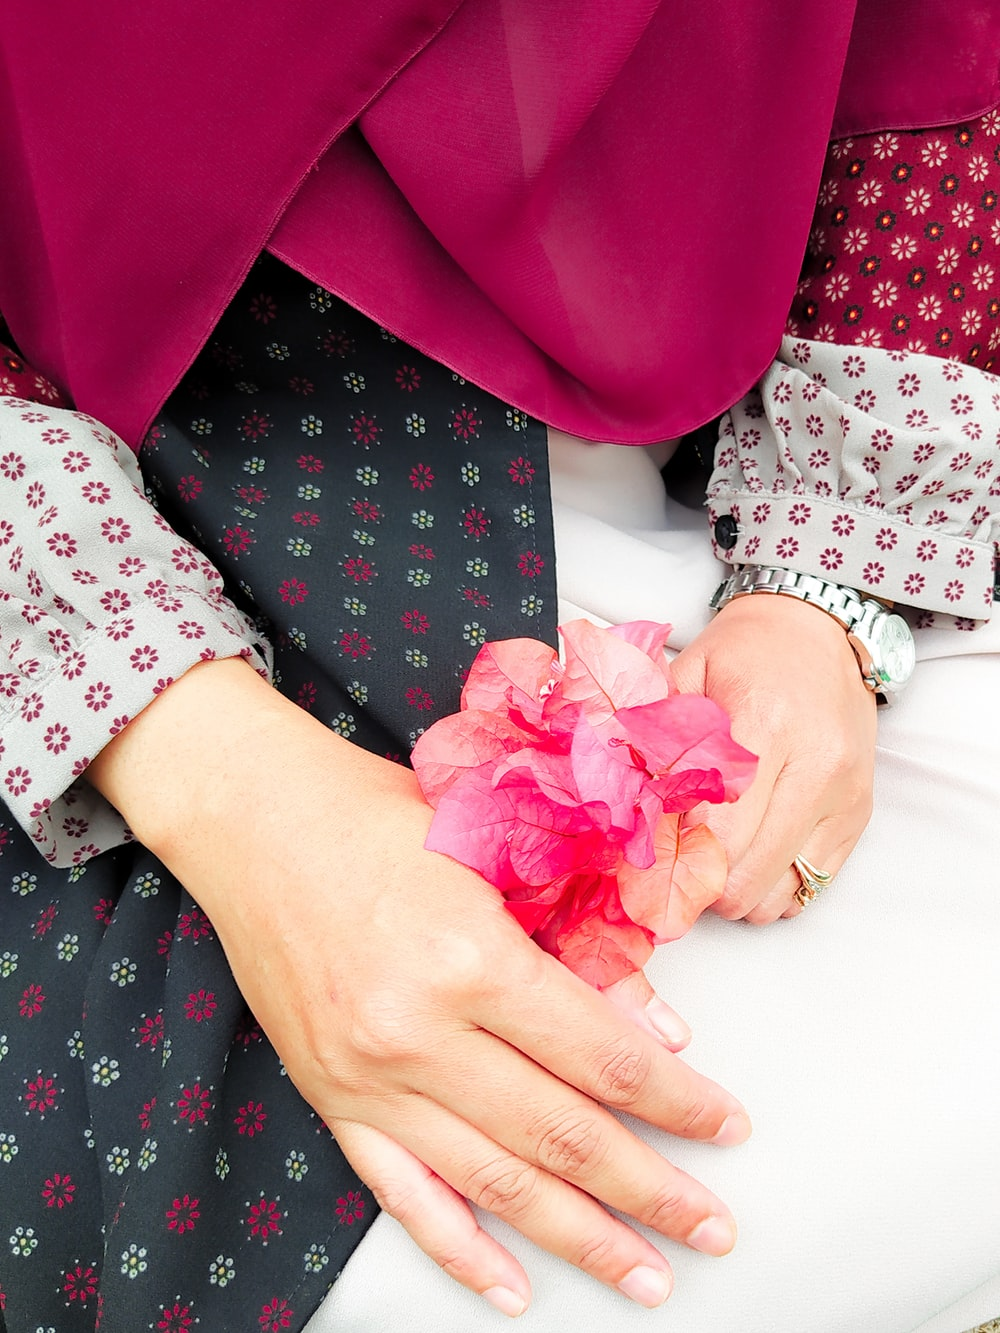 person holding pink flower petals